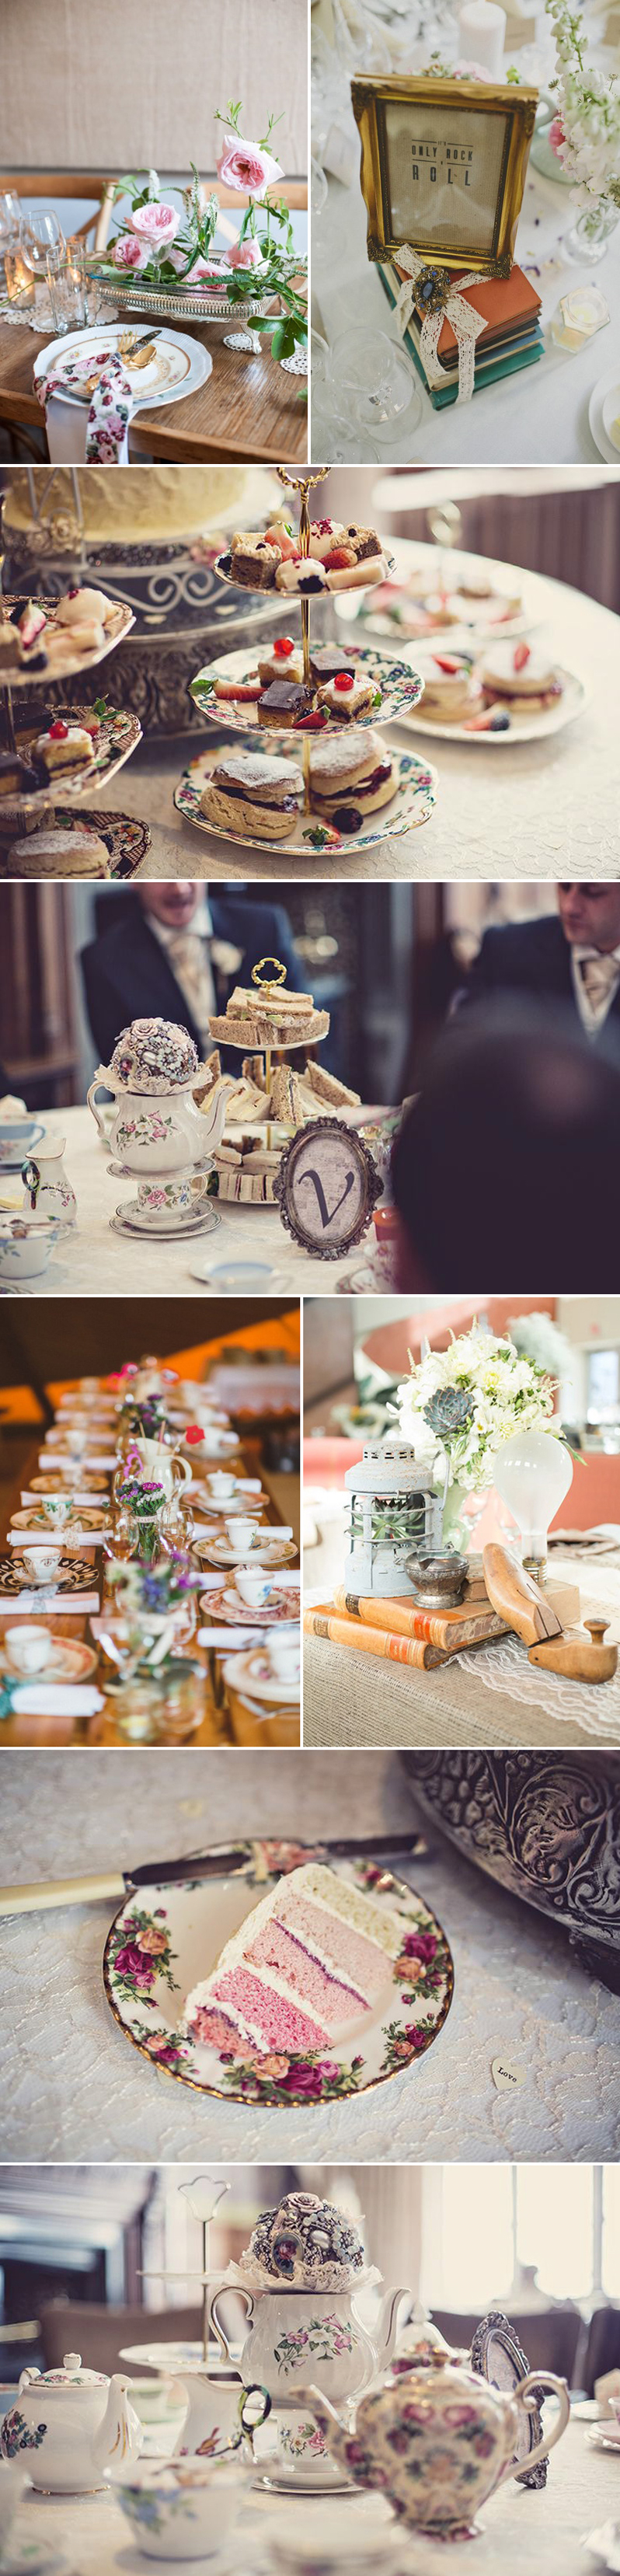 Coco Wedding Venues - Modern Vintage - Wedding Style Category - Tea Party.